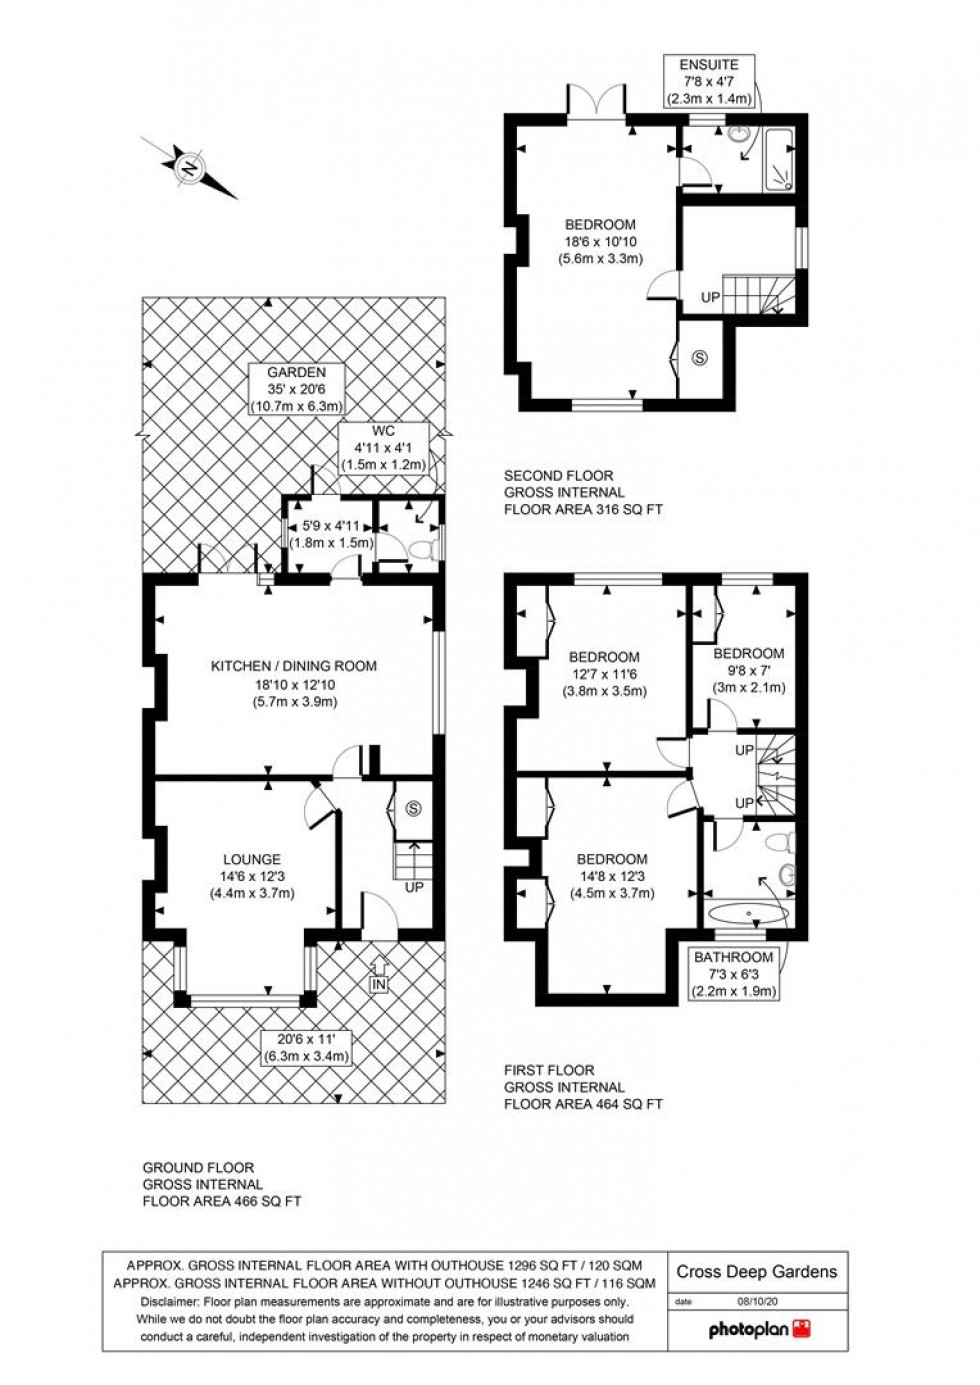 Floorplan for Cross Deep Gardens, Twickenham